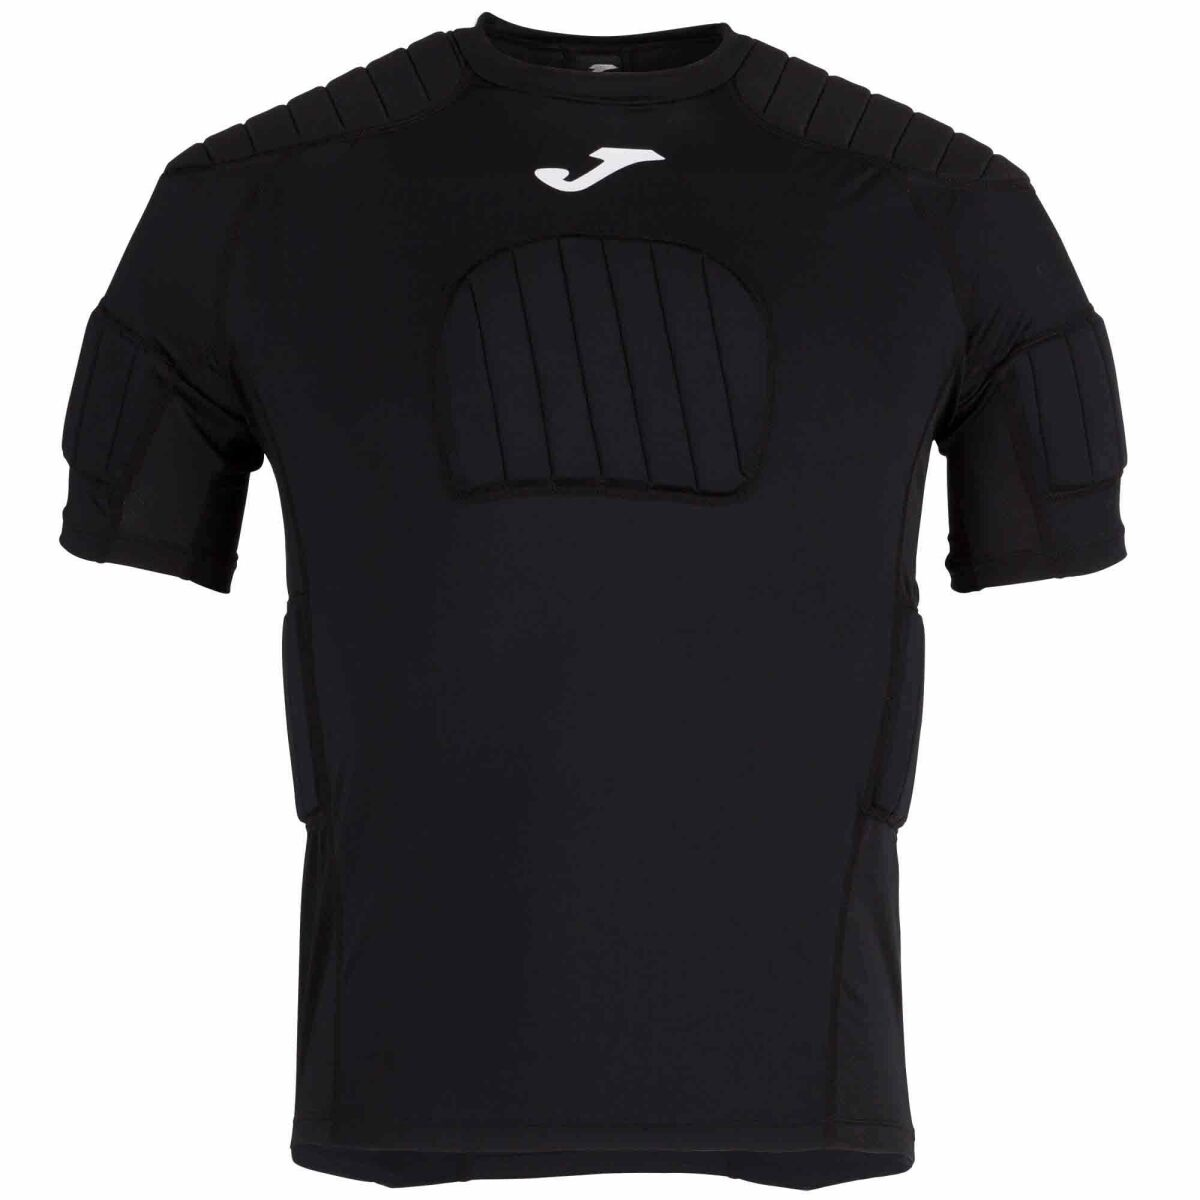 Protec Rugby Top